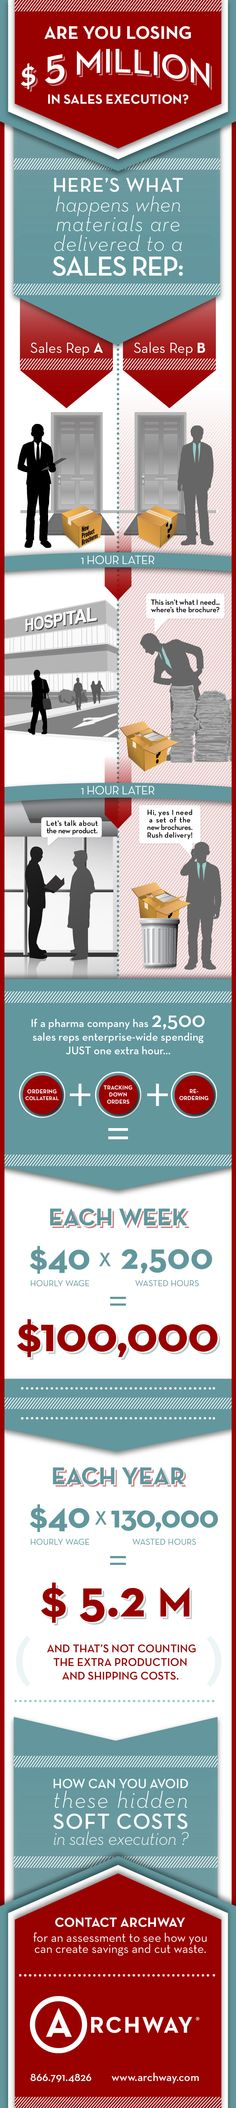 Infographic: Shows pharma marketers how quickly costs can add up when their marketing supply chain and the ordering process isn't optimized.